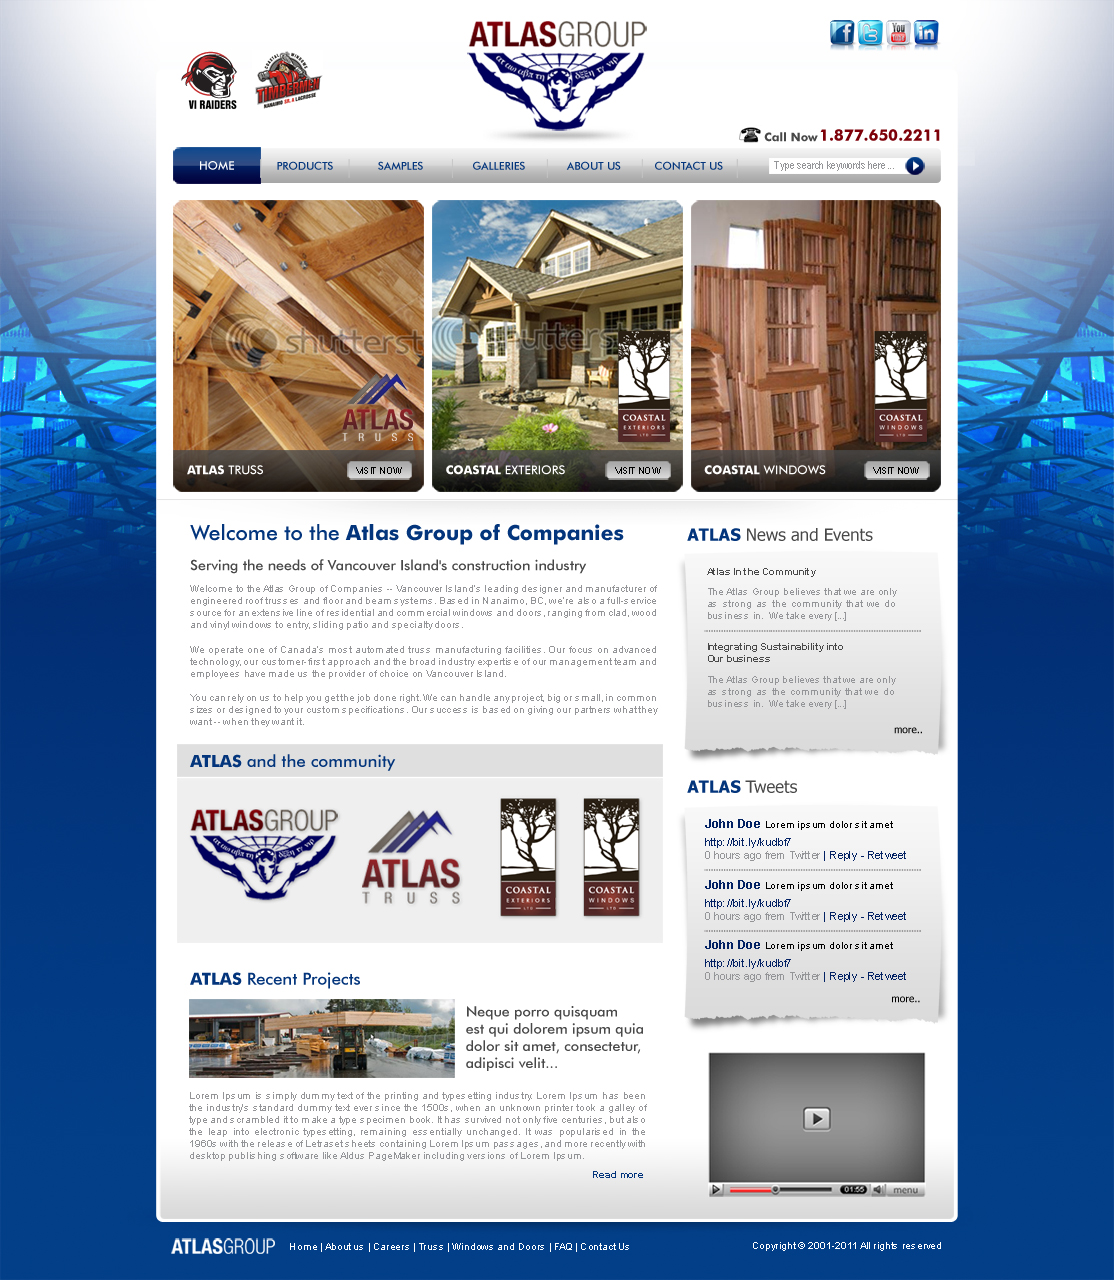 Web Page Design by ArsalanHanif - Entry No. 35 in the Web Page Design Contest The Atlas Group Website.